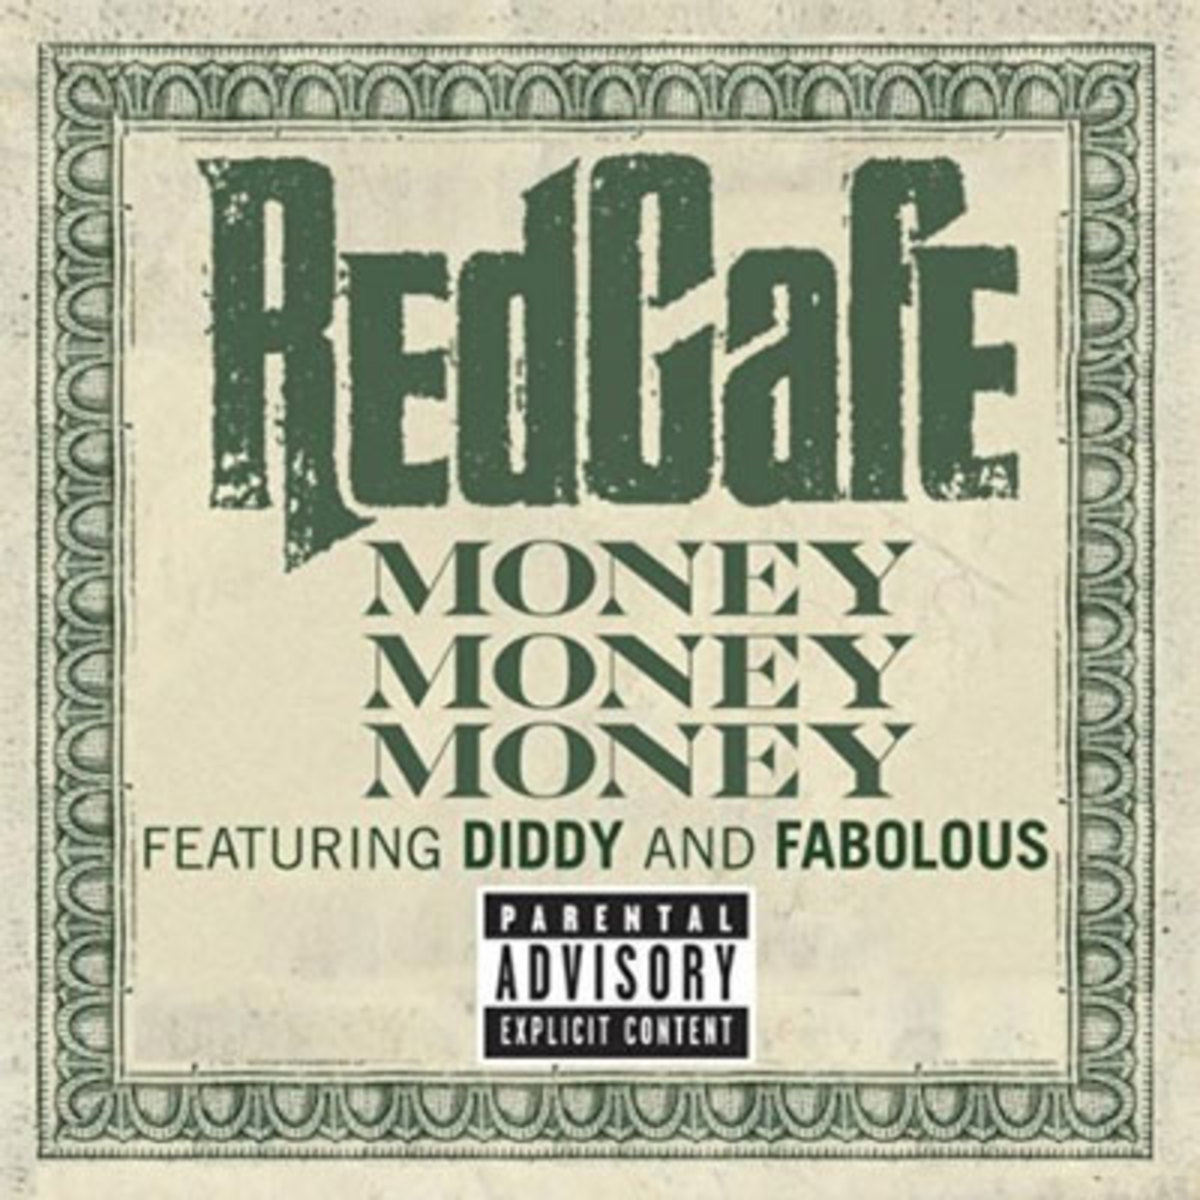 redcafe-moneymoneymoney.jpg